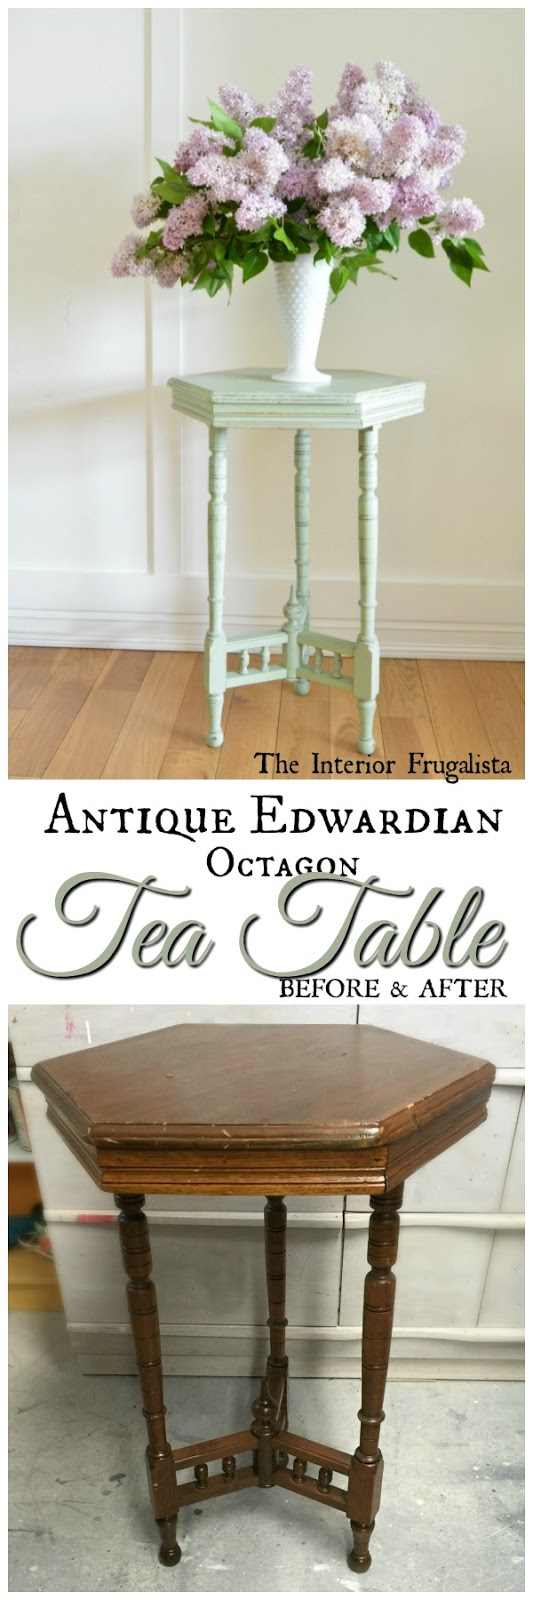 Antique Edwardian Octagon Tea Table Before and After